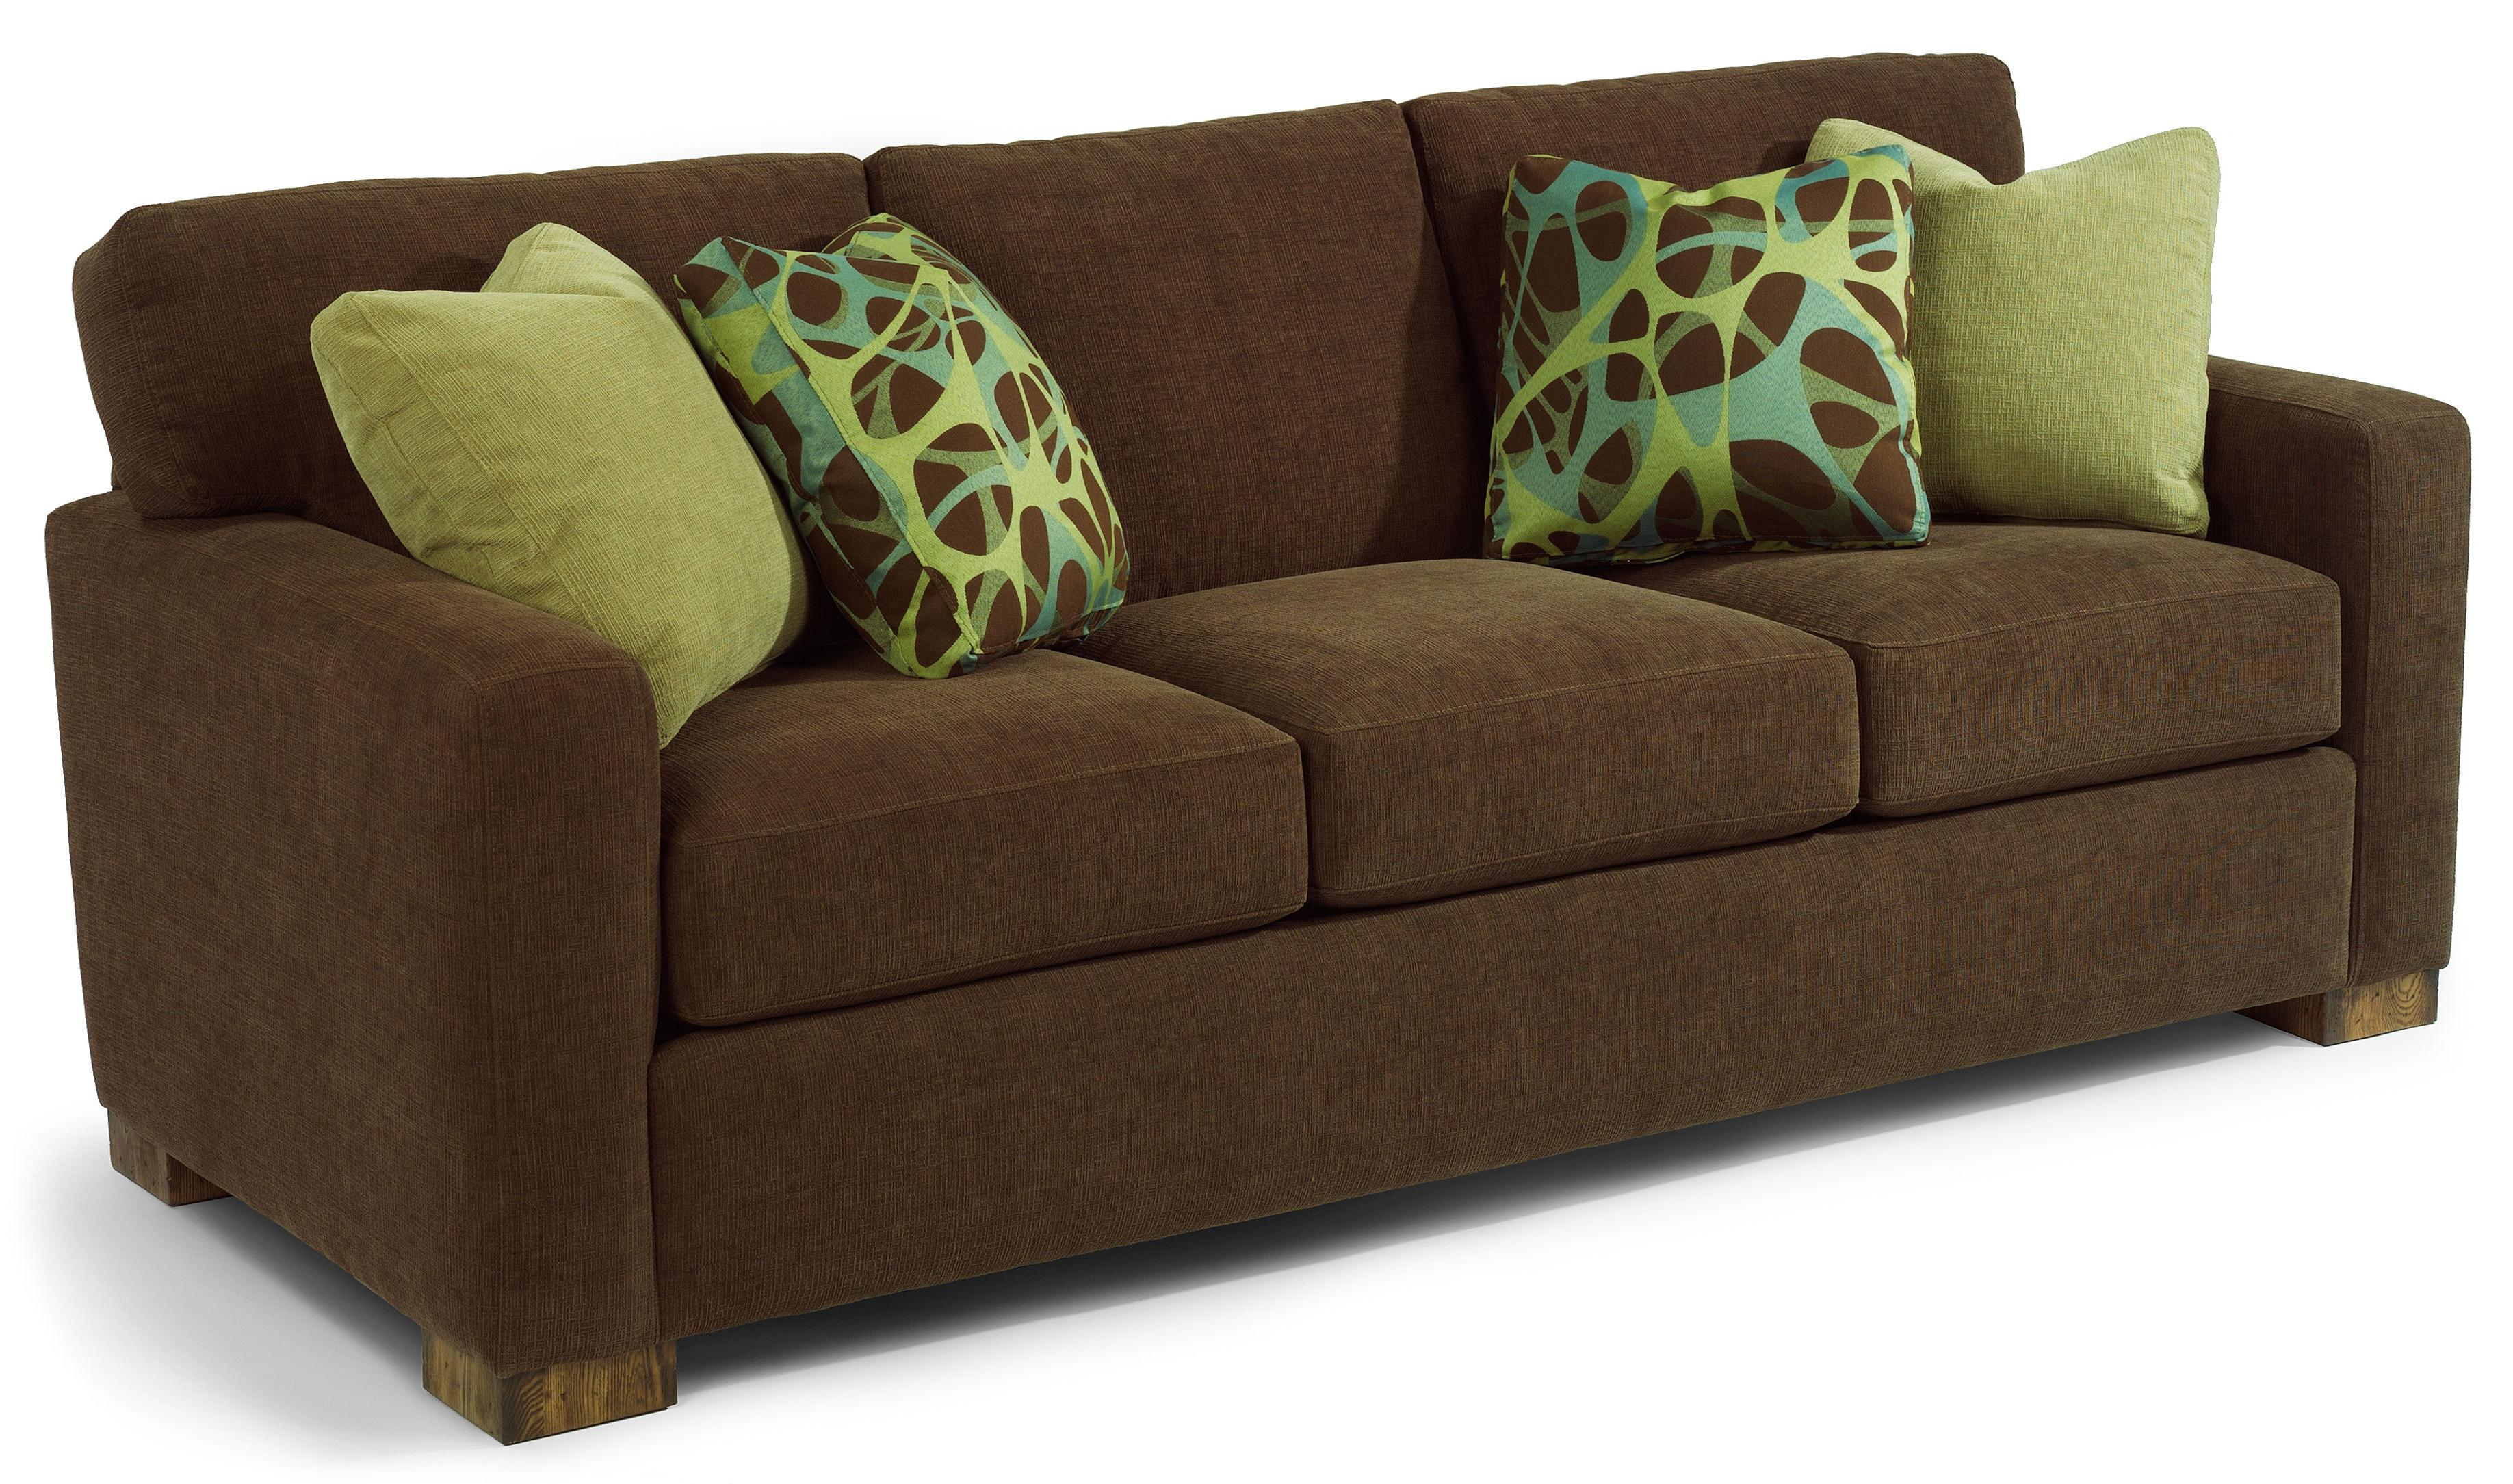 Flexsteel Bryant Contemporary Sofa With Track Arms